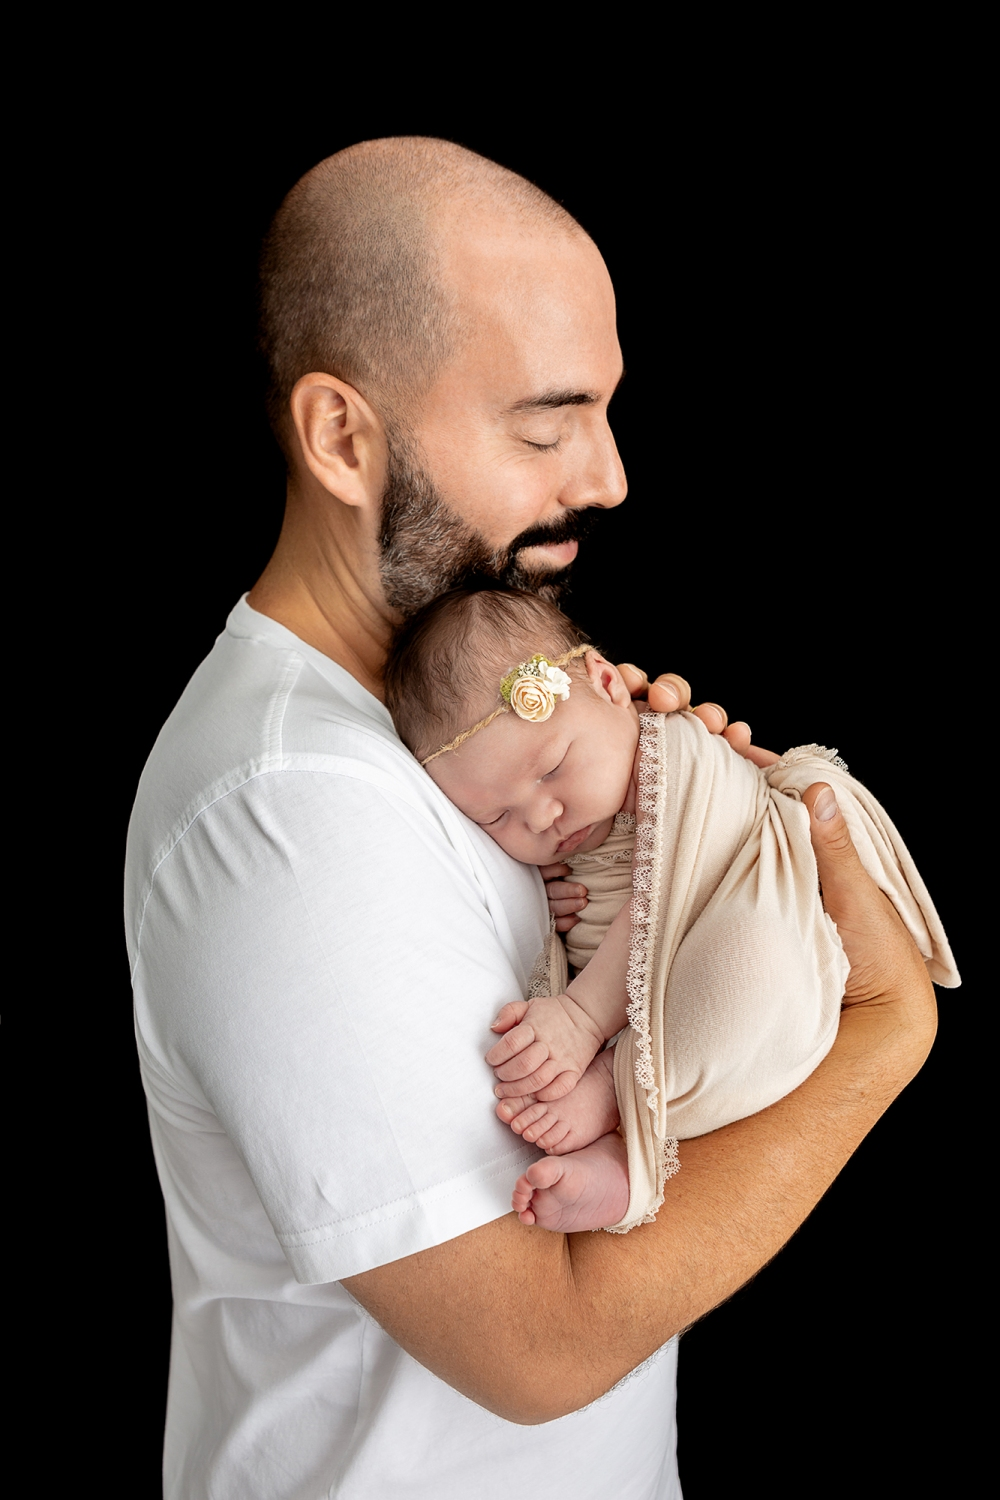 father with a salt and pepper beard wearing a white tee closing his eyes and smiling as he holds his newborn daughter who is wearing a twine and rosette headband and wrapped in an off-white stretch wrap with lace trim, the image is contrasted by a black background